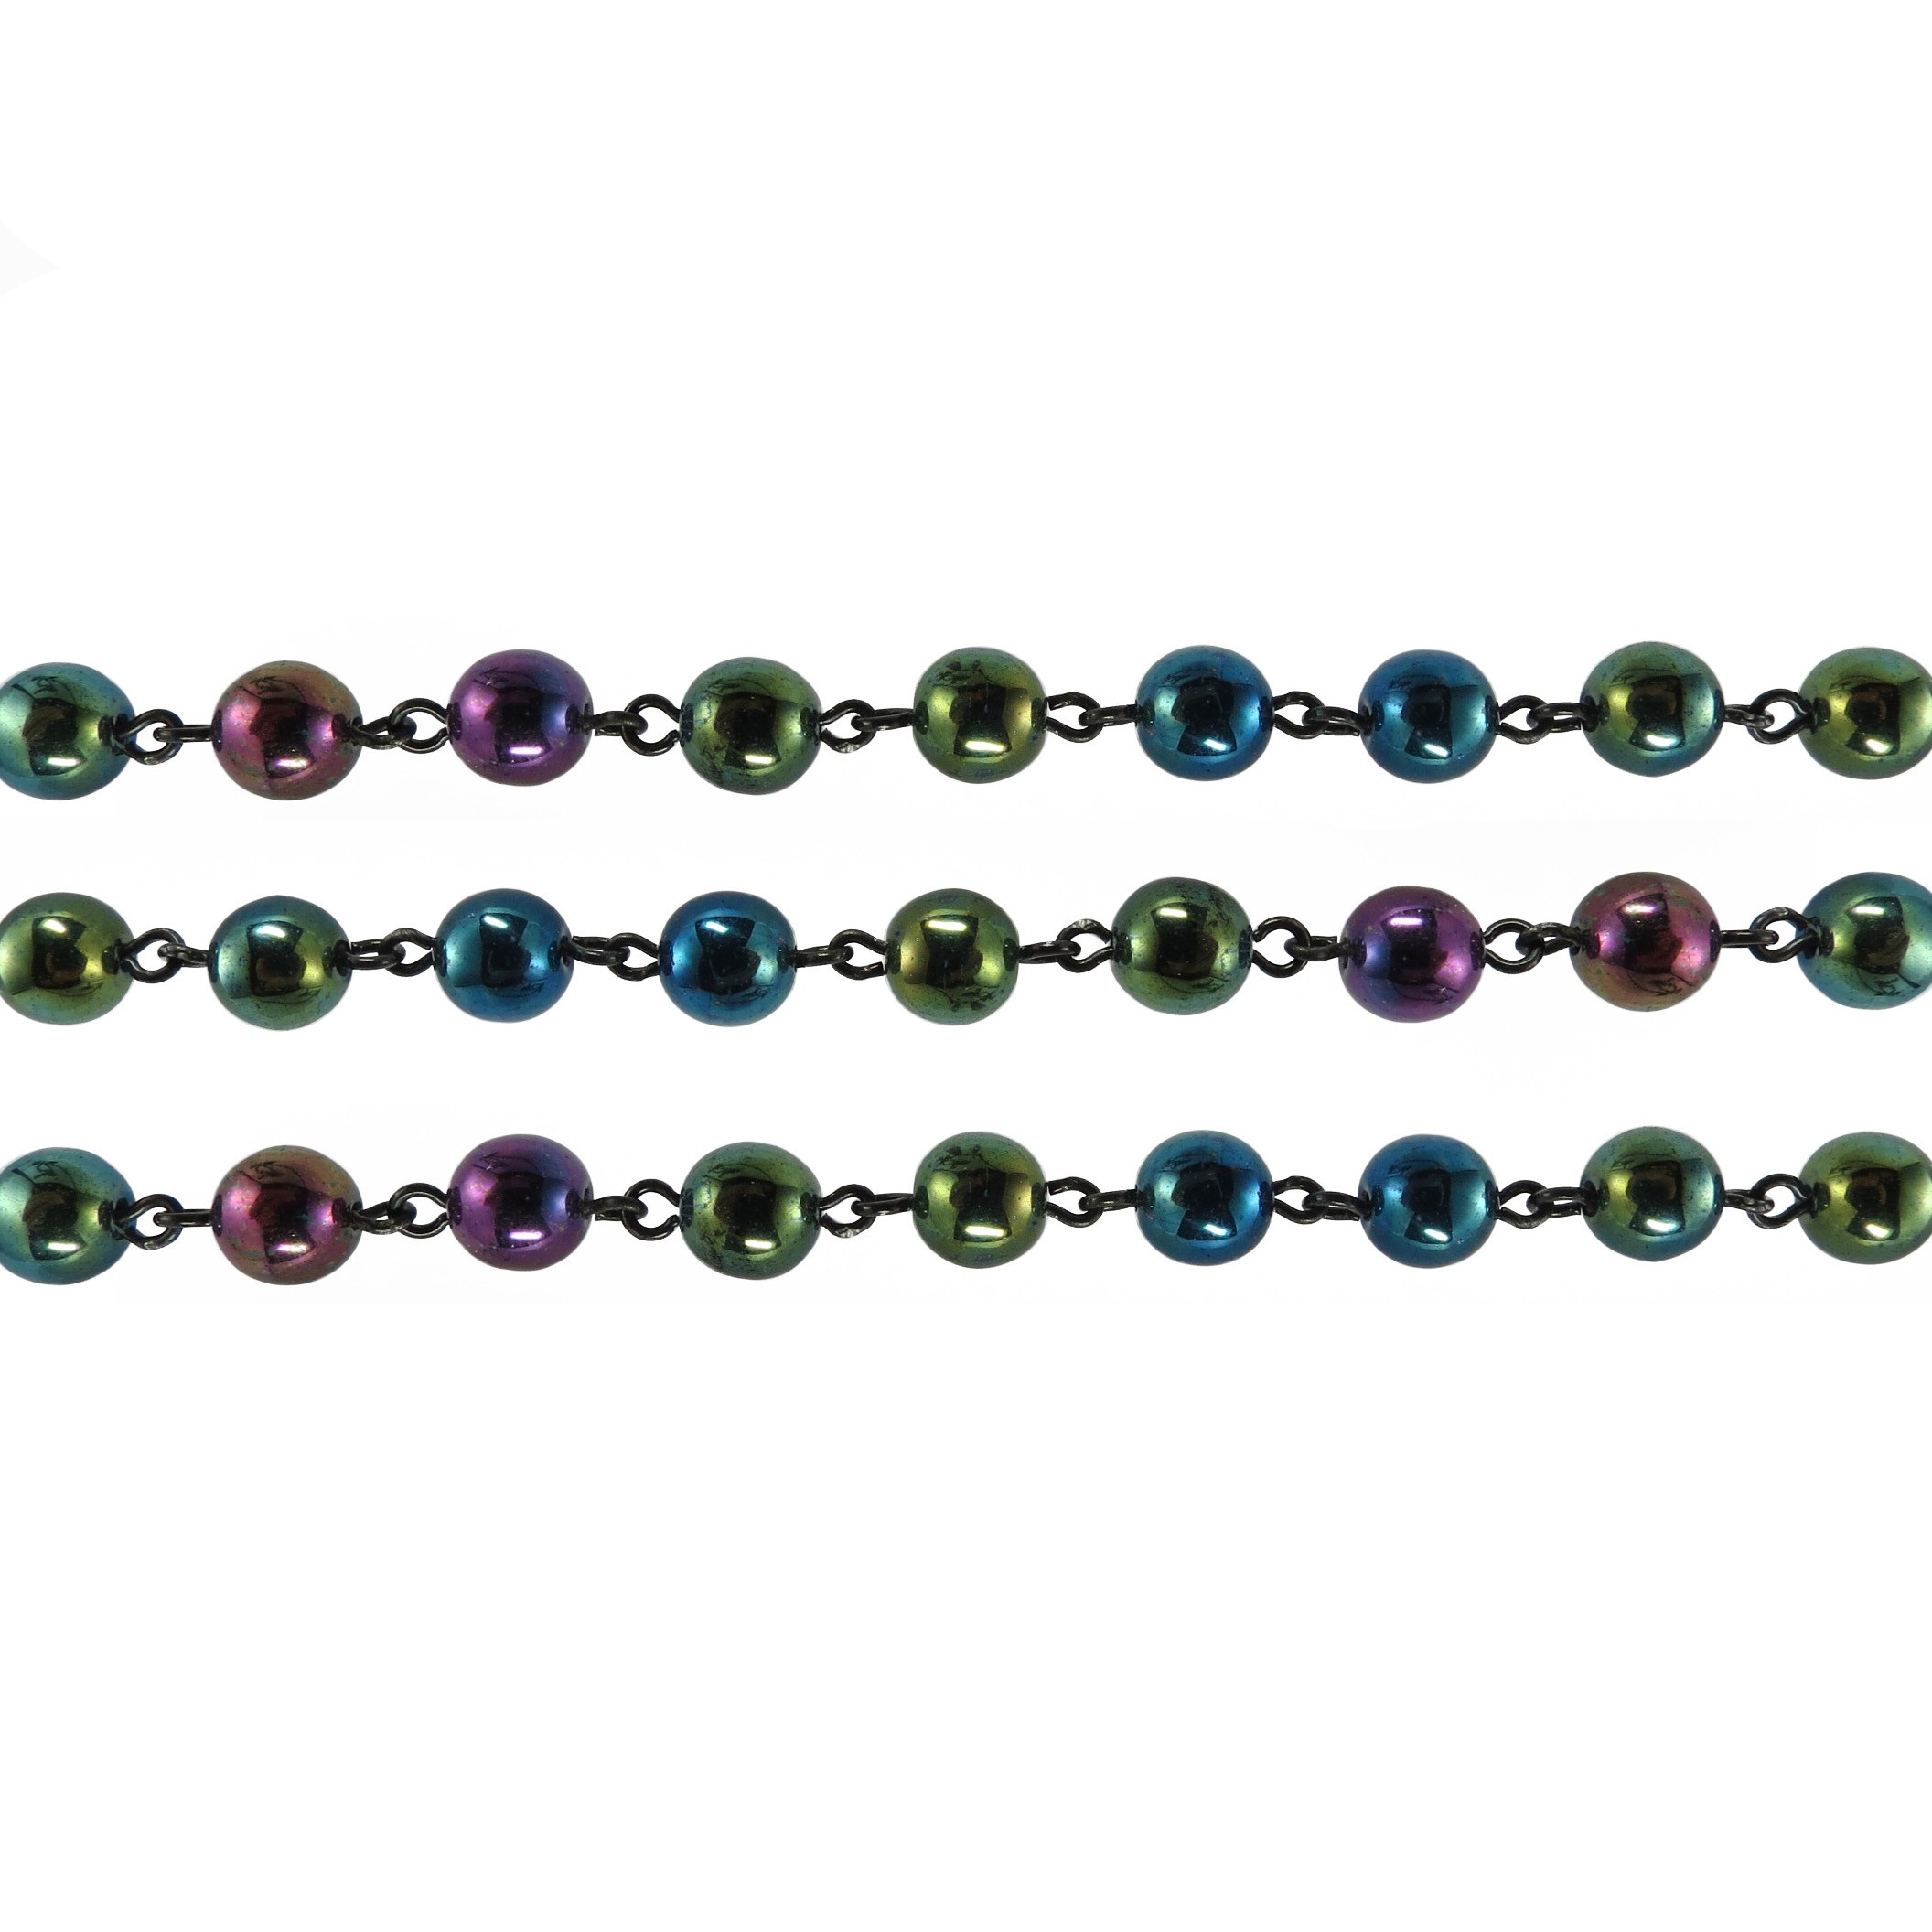 Czech Linked Rosary Chain, 6mm Green Iris Druk Bead, Black Linked Chain, (Sold by the Meter)